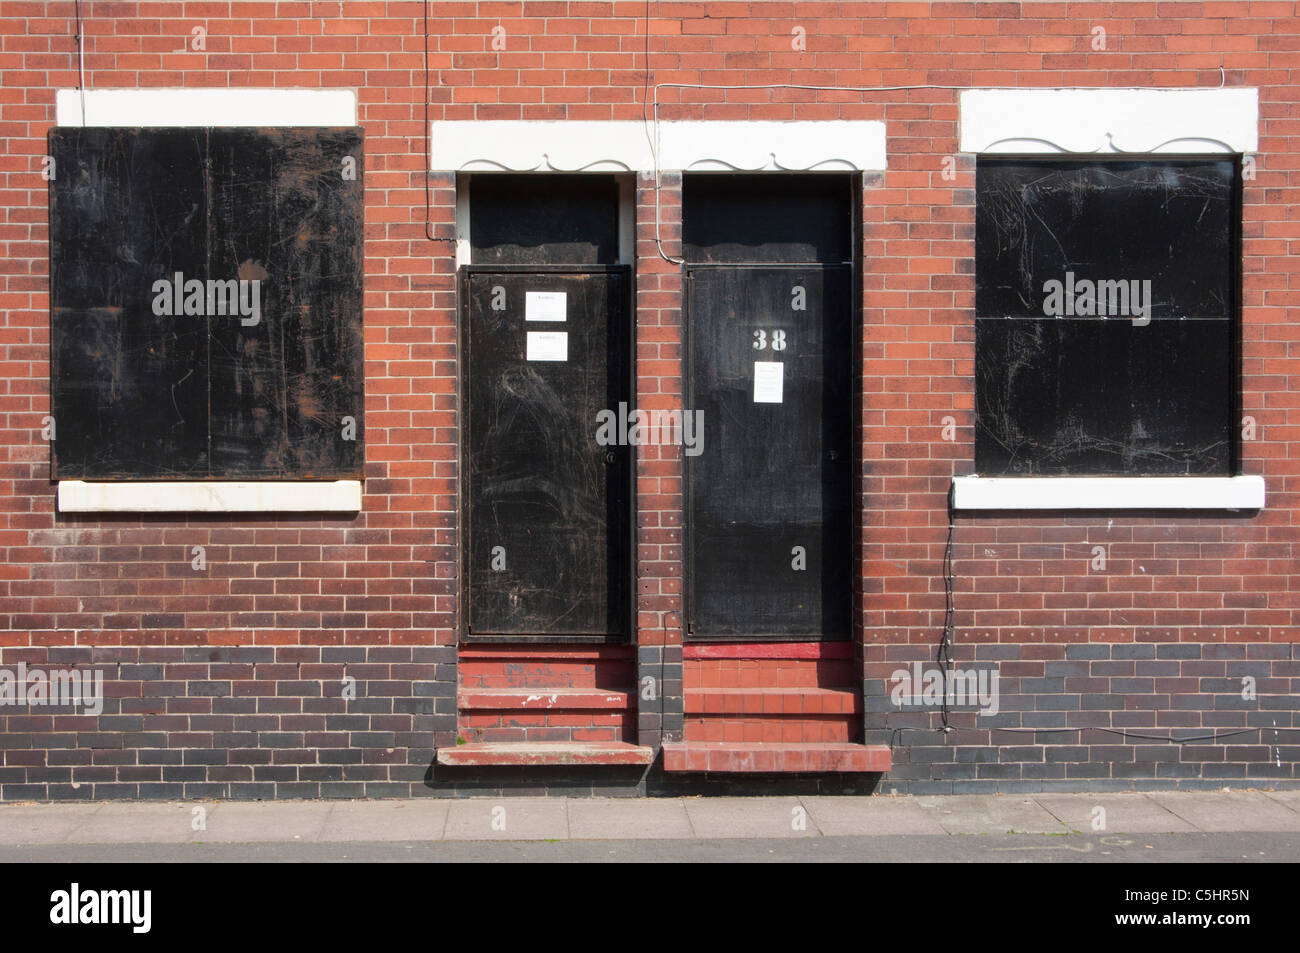 Boarded up houses near Potteries factory in Middleport, Stoke-on-Trent, Staffordshire, England. - Stock Image